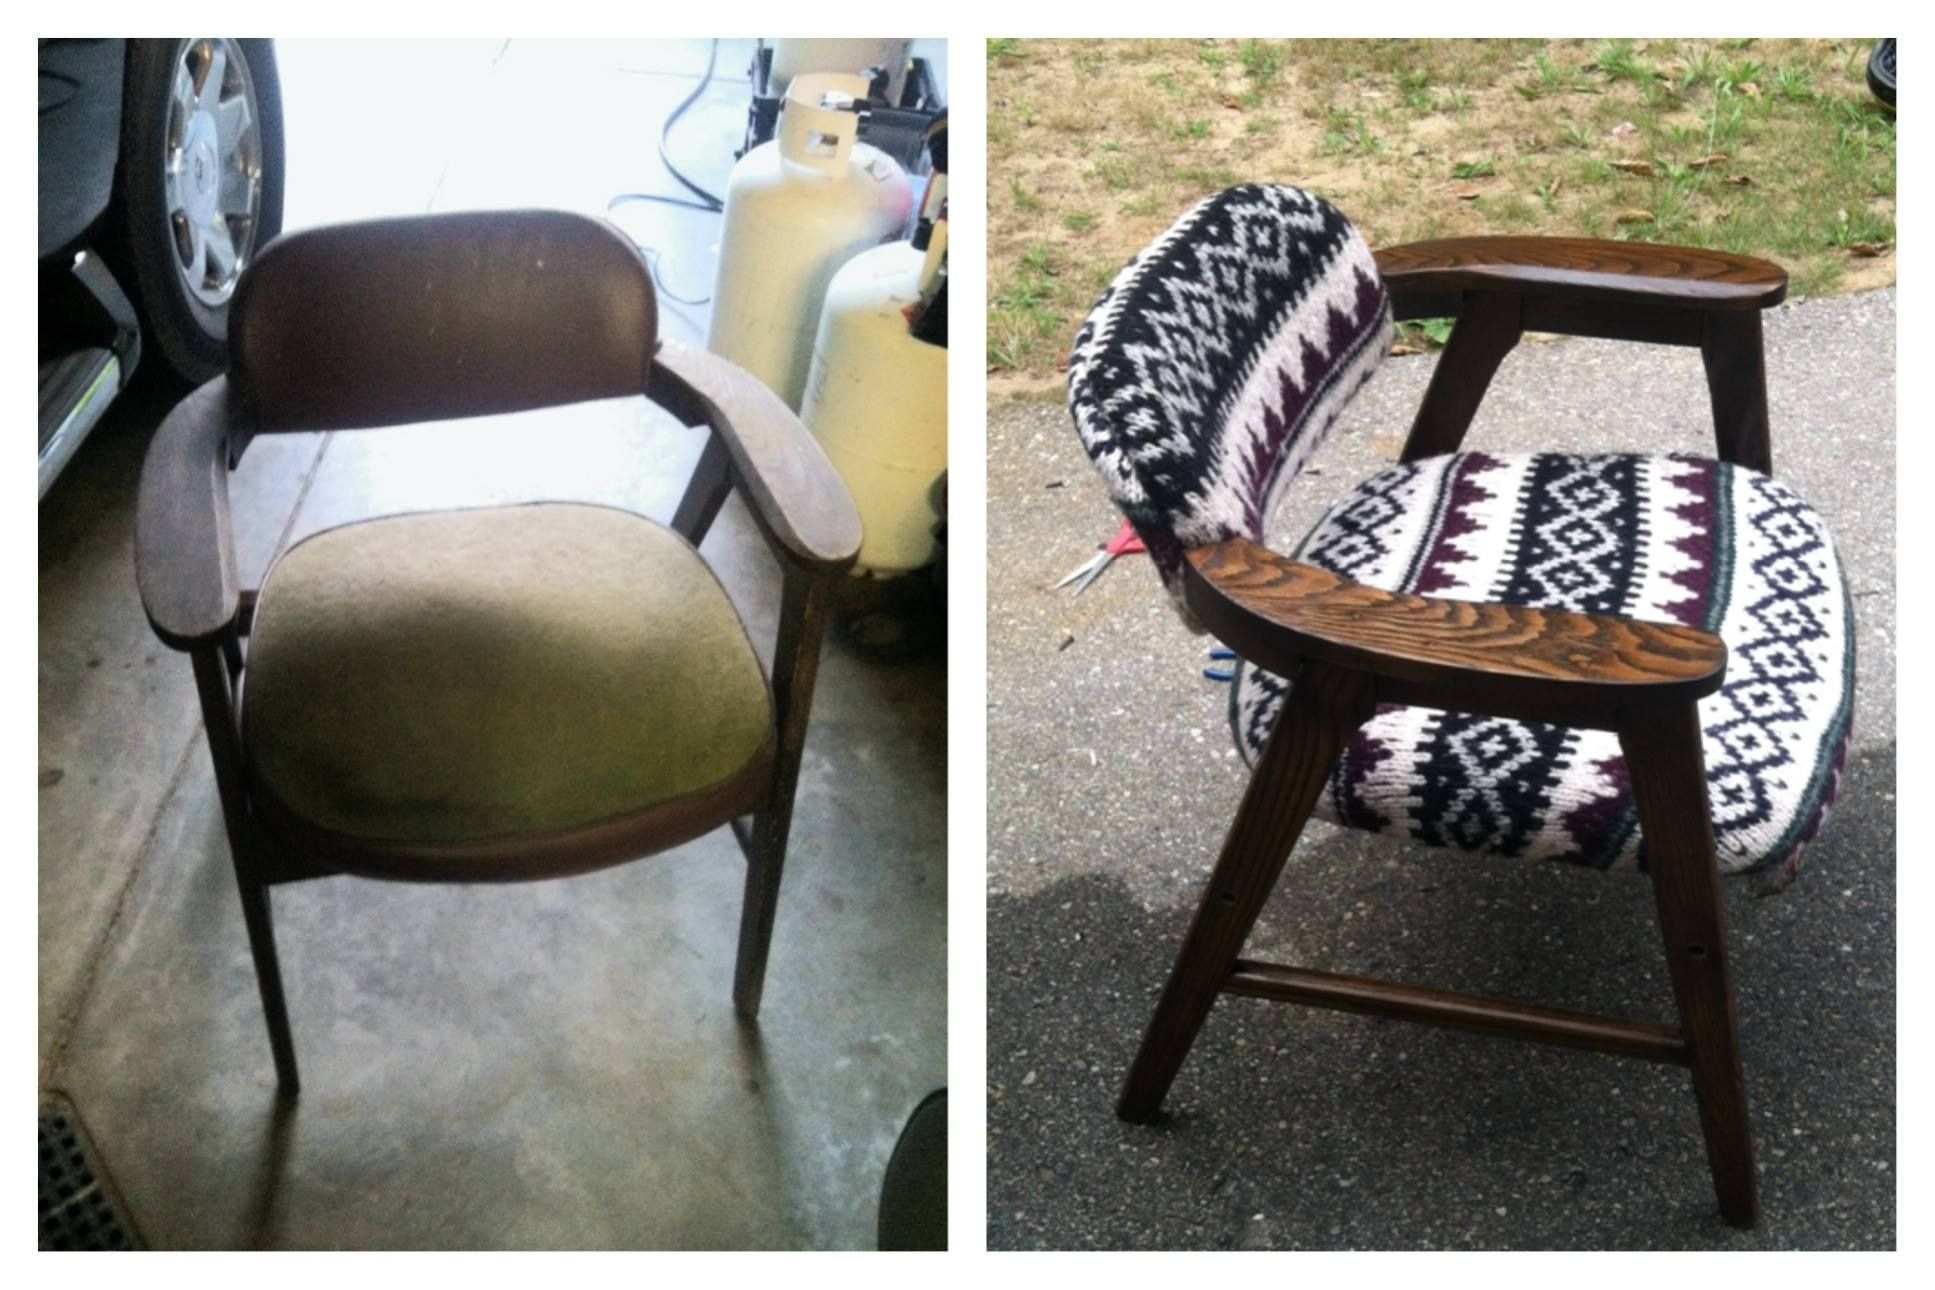 Reupholster Antique Chair With Old Bulky Sweater From The 90u0027s...I Knew I